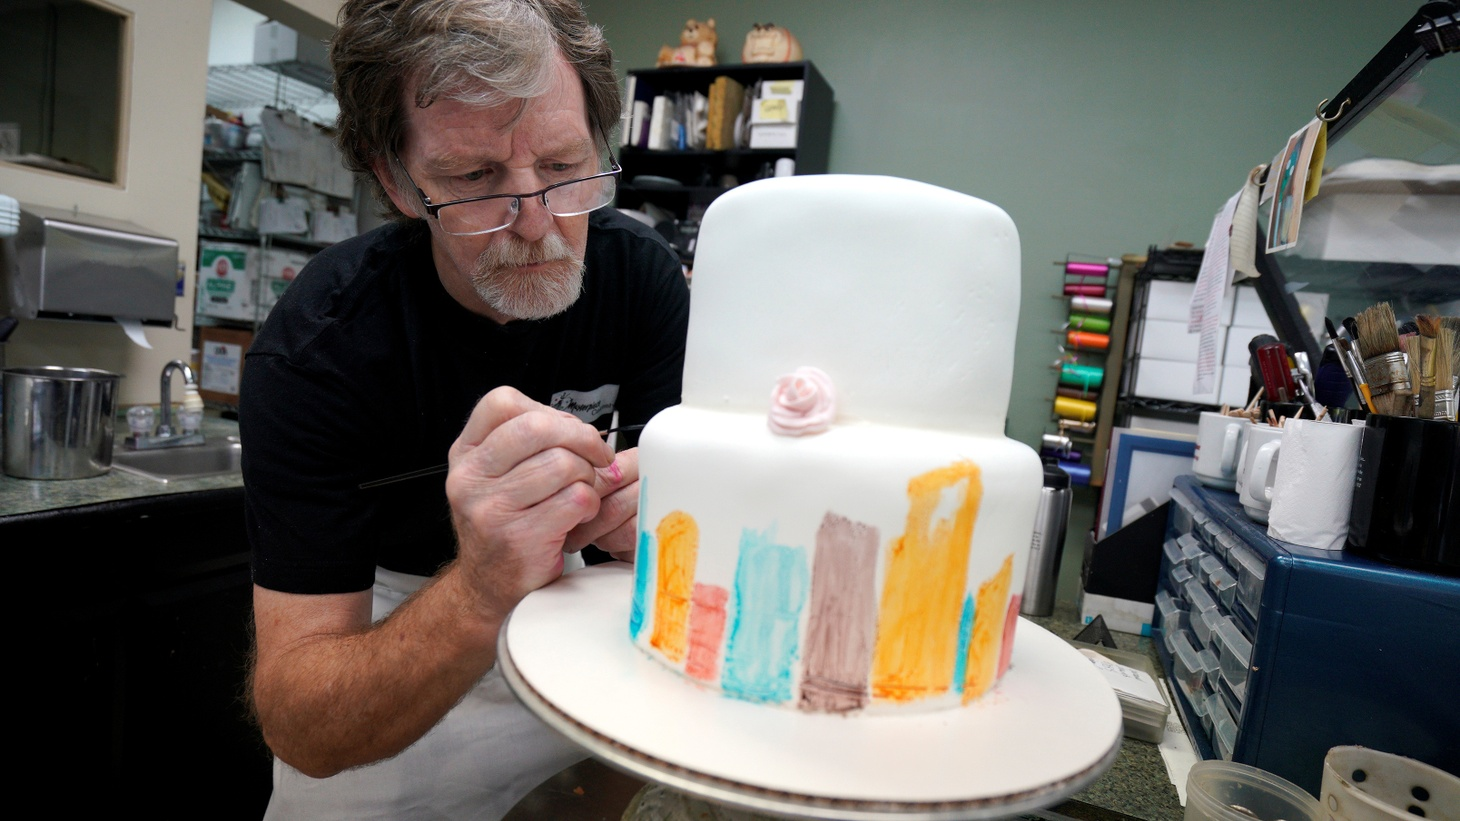 Baker Jack Phillips decorates a cake in his Masterpiece Cakeshop in Lakewood, Colorado, September 21, 2017 Photo by Rick Wilking/Reuters 